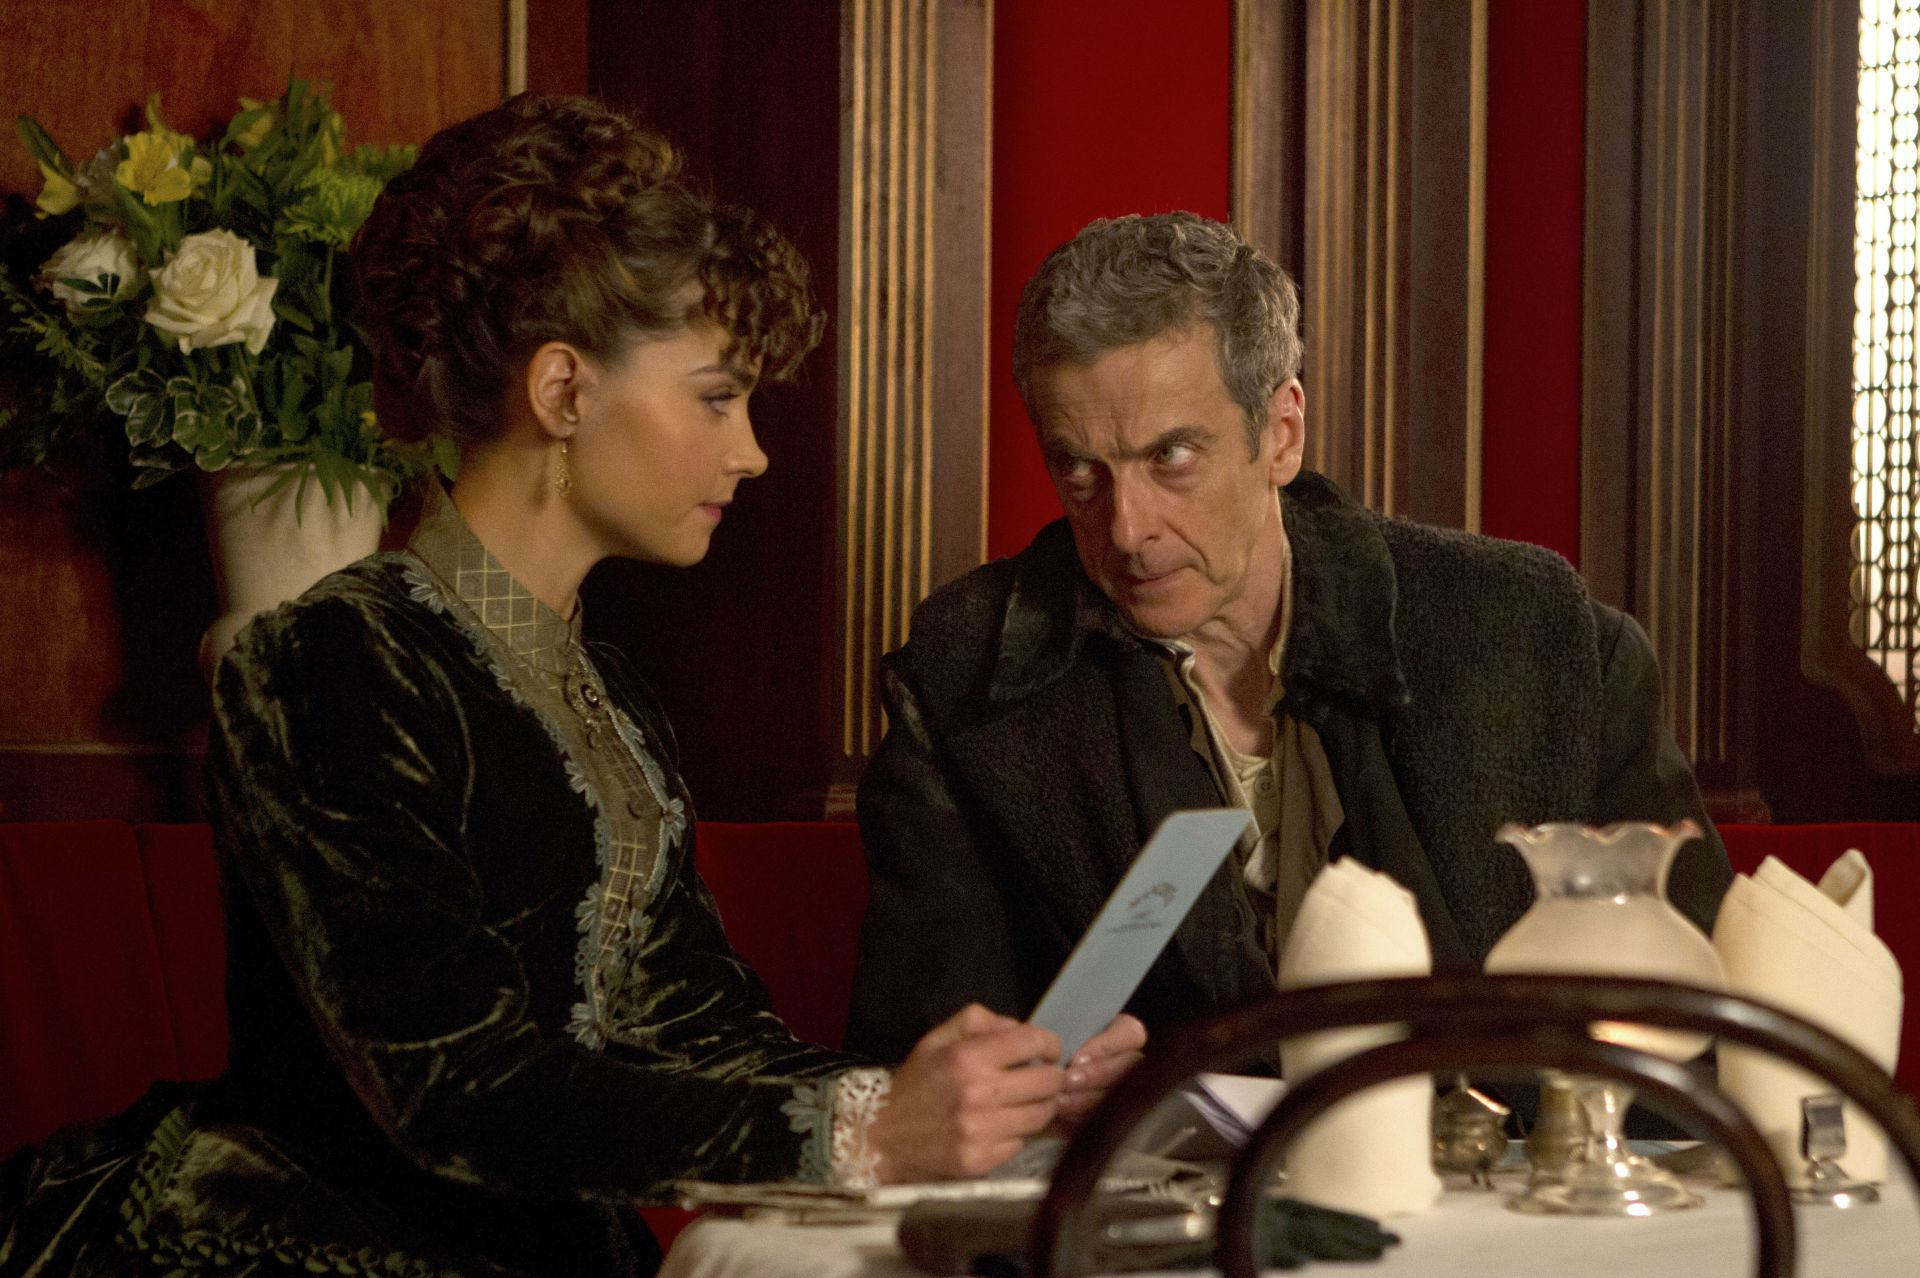 Peter Capaldi as the Doctor, with Jenna Coleman as Clara (Credit: BBC/Adrian Rogers)